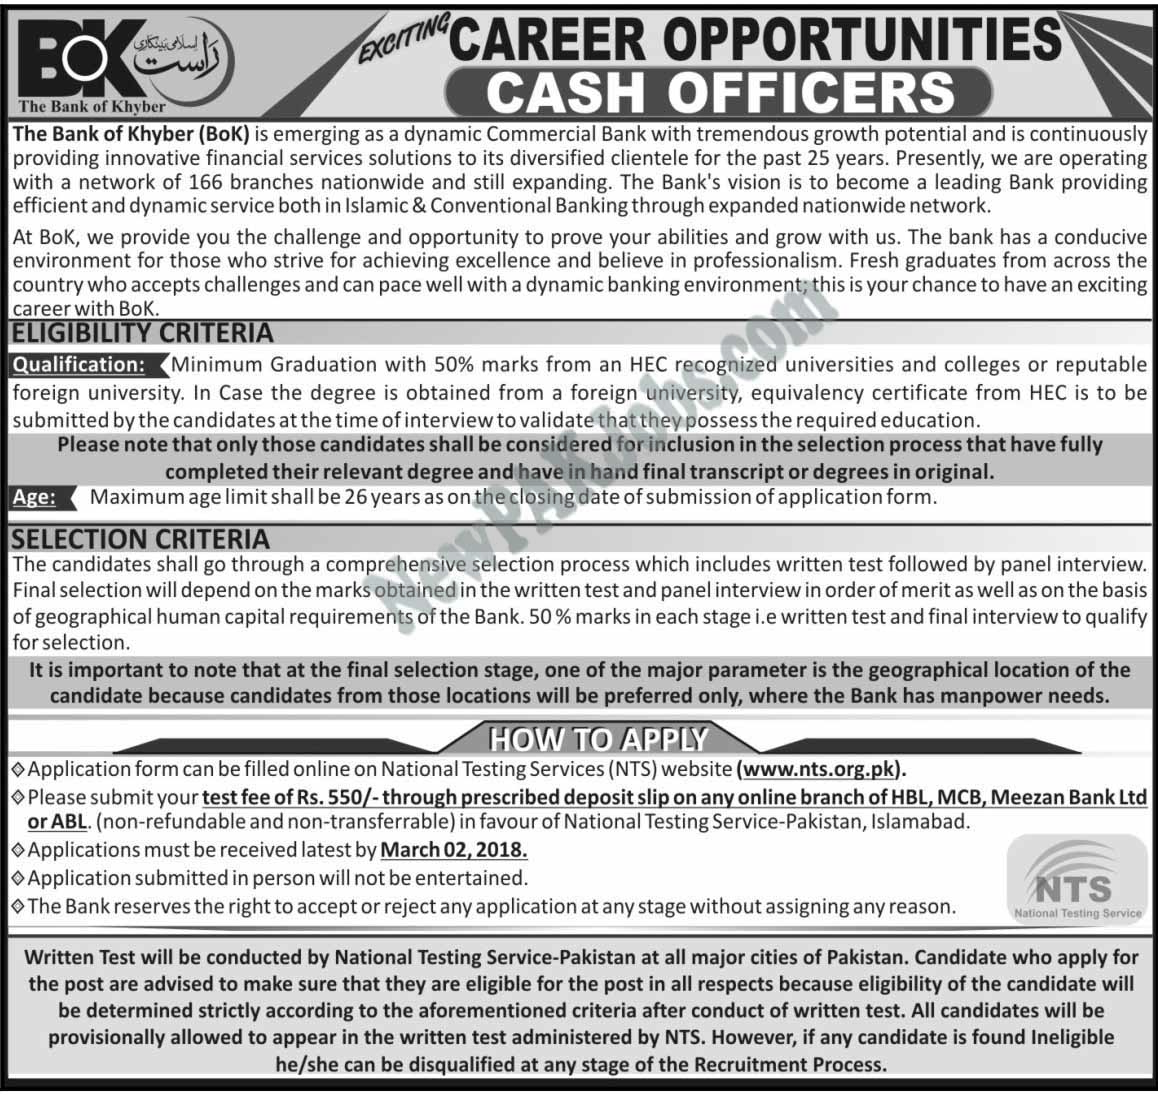 Cash Officer Jobs in BOK Bank of Khyber, Selection via NTS